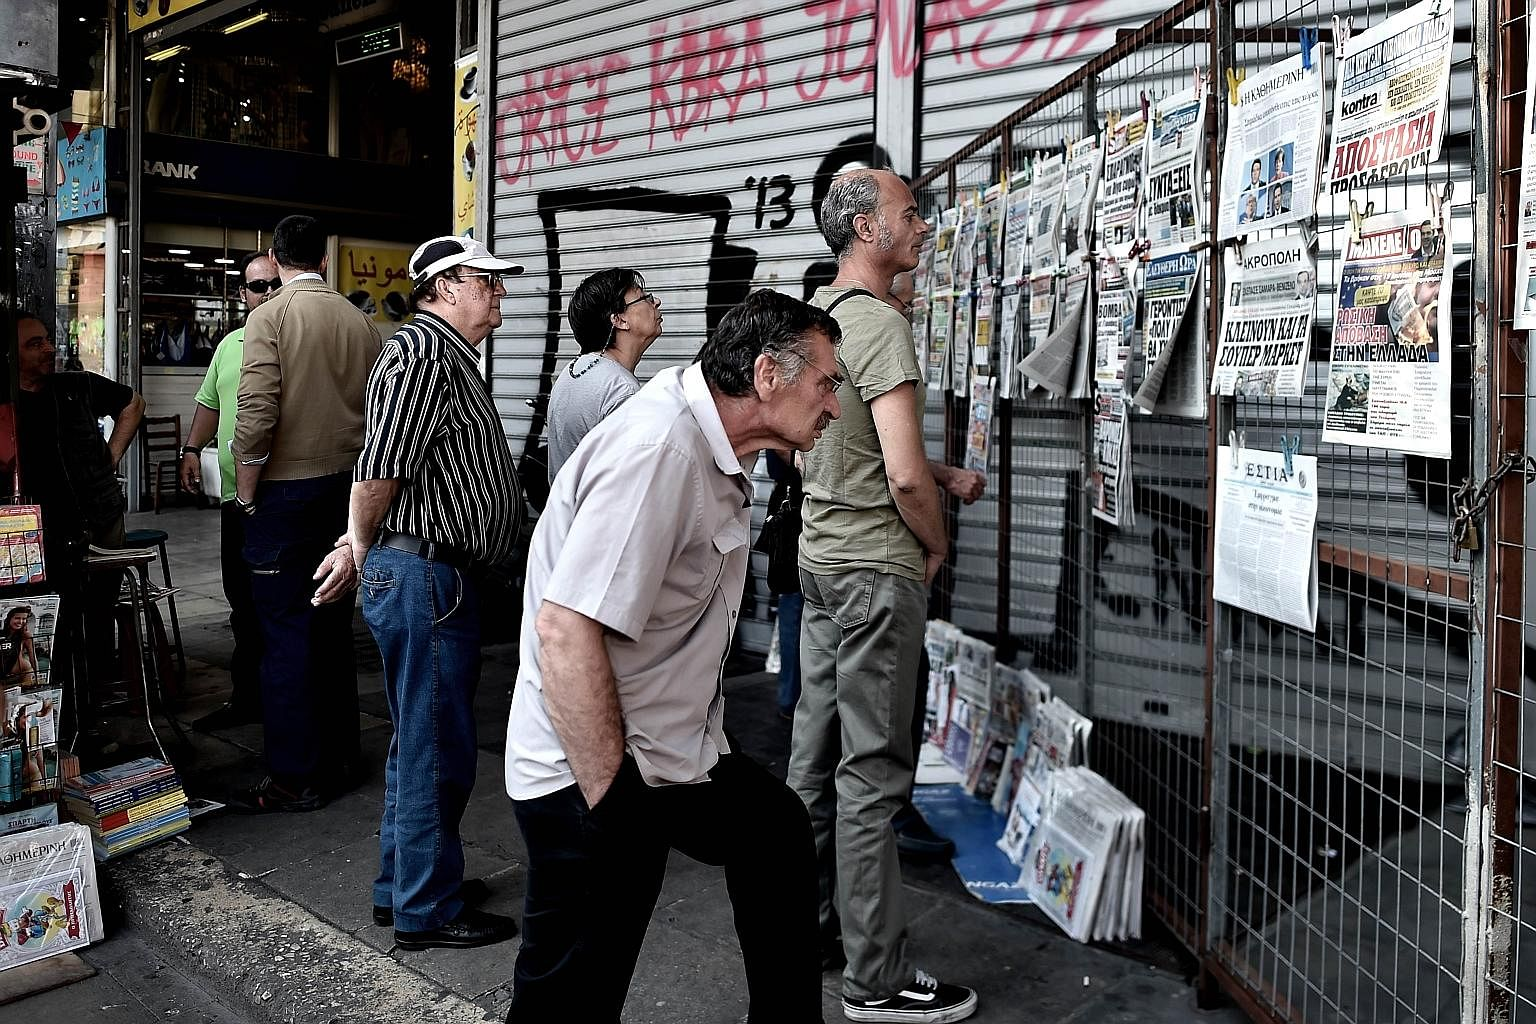 Reactions in Greece to the debt crisis are vastly contrasting. On one of its remote islands, the issue is barely mentioned, unlike in Athens (above), where the discussion never strays far from the crisis.